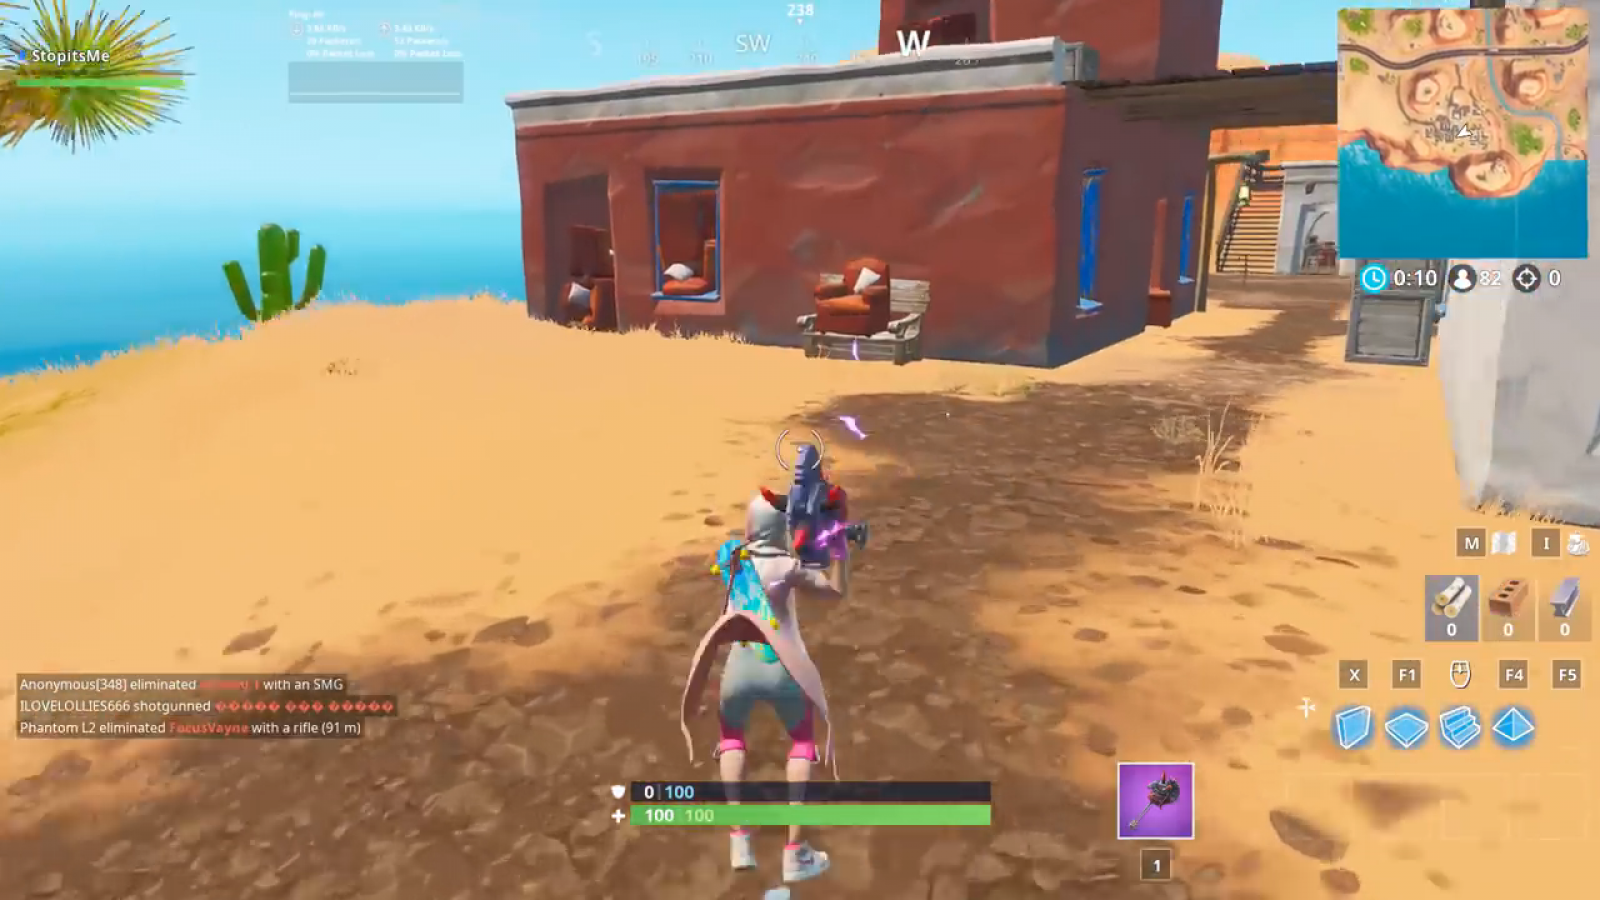 Fortnite' Fortbyte #16 Location - Found in Desert House With